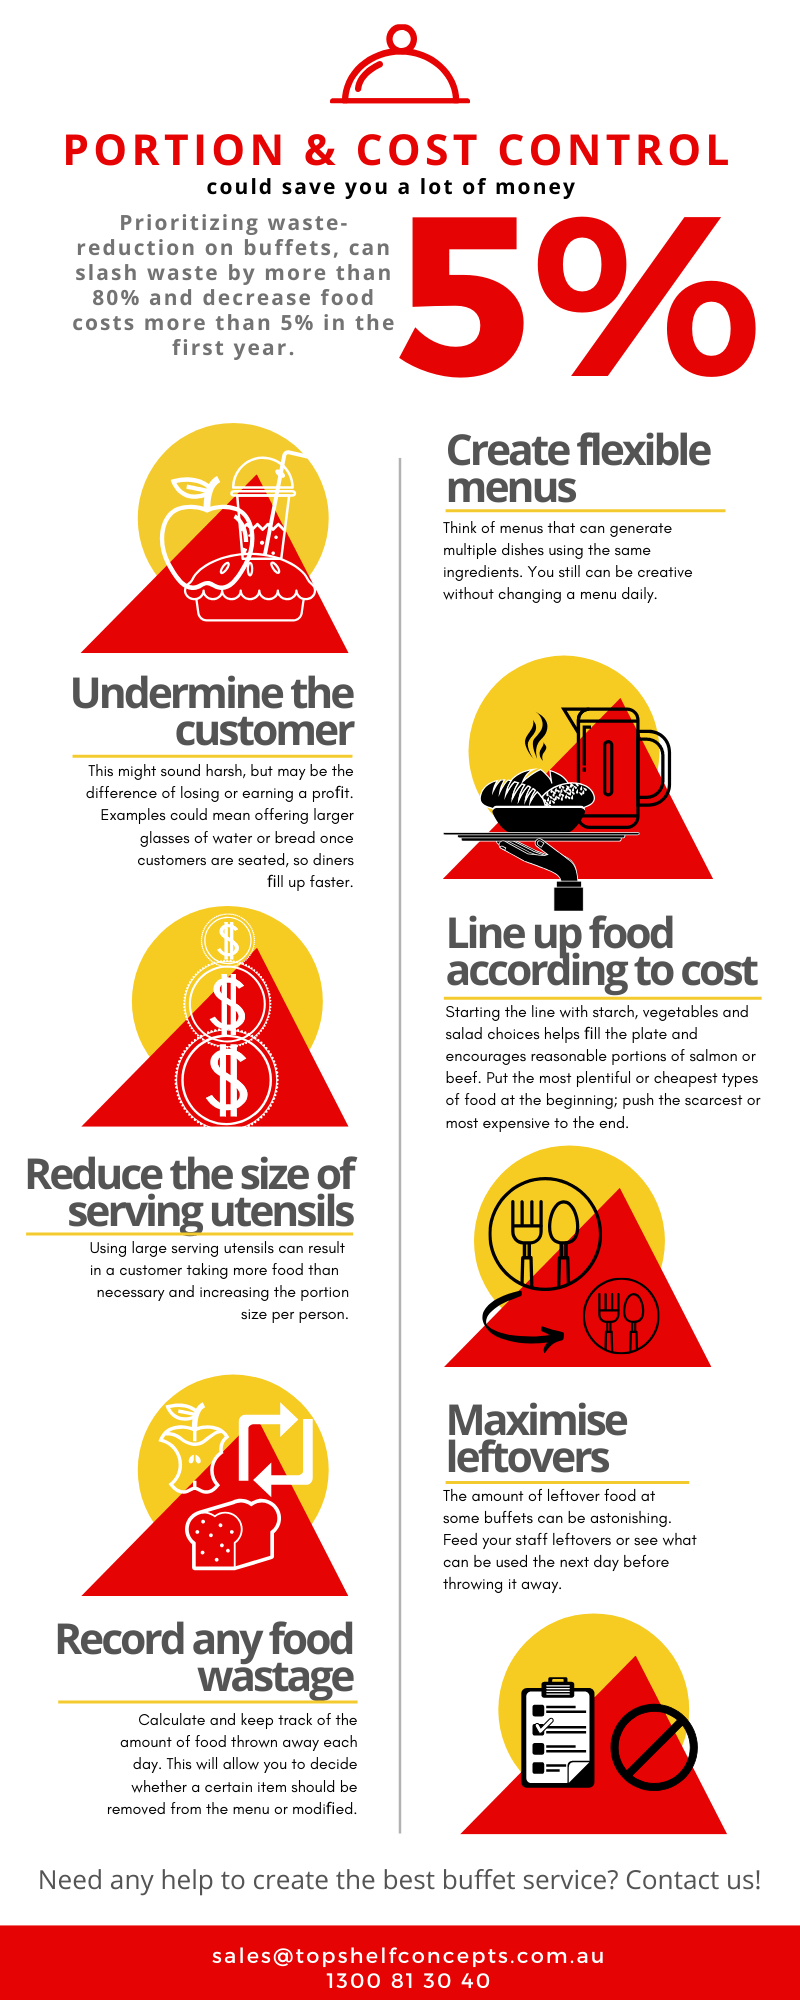 Portion & Cost Control Infographic